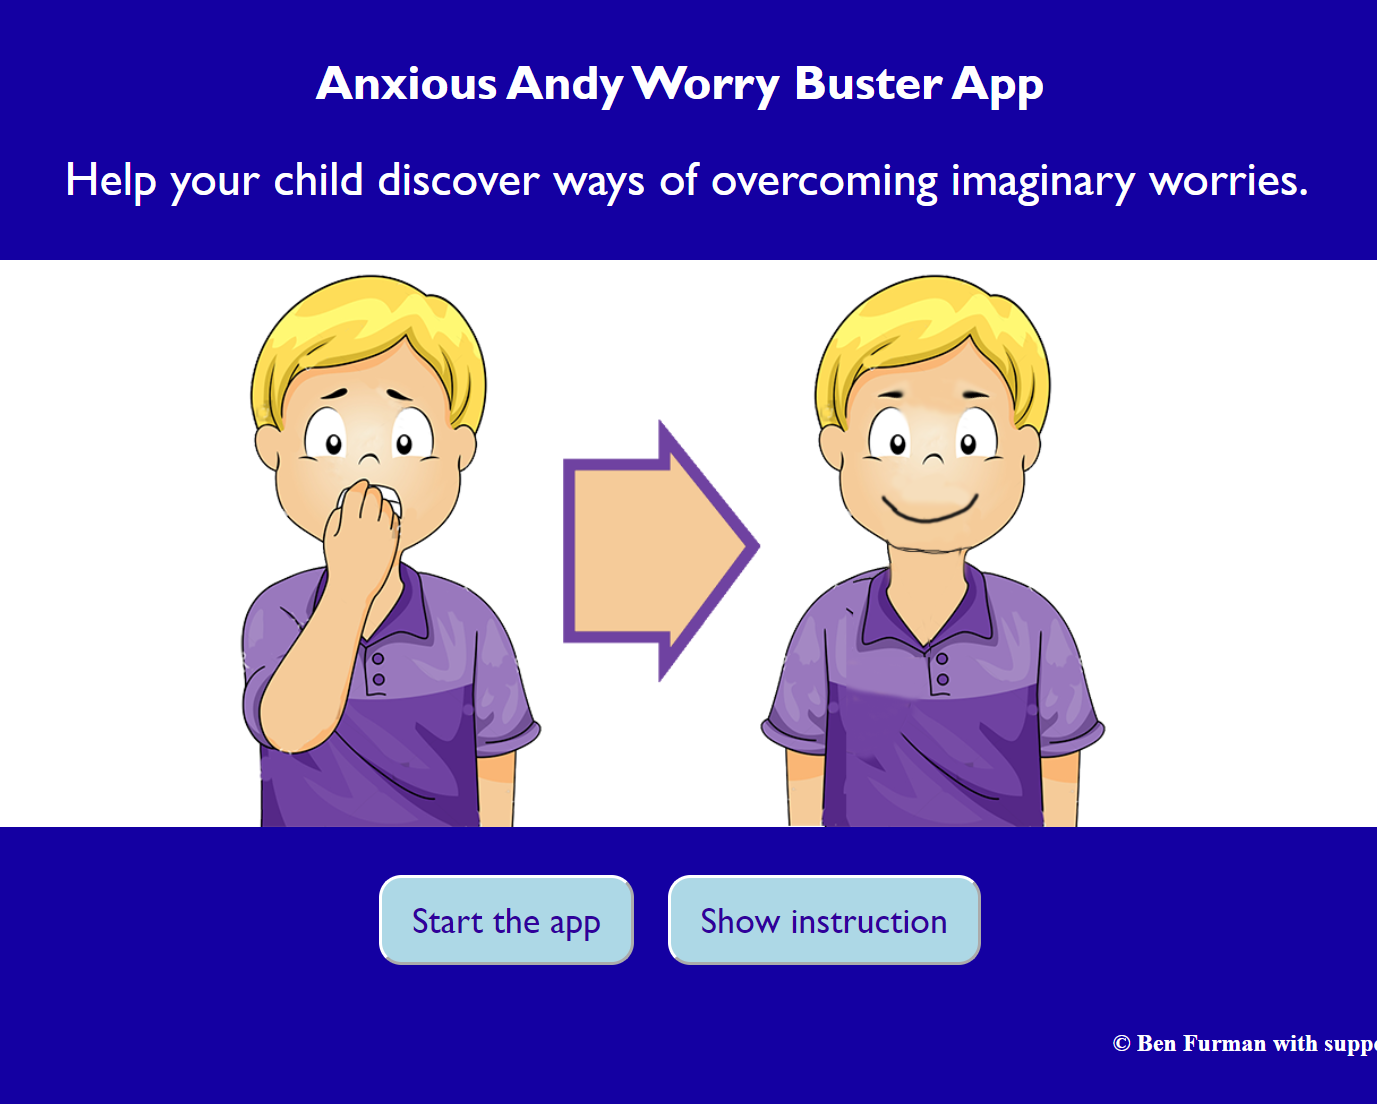 the front page of the Anxious Andy worry buster prorgam